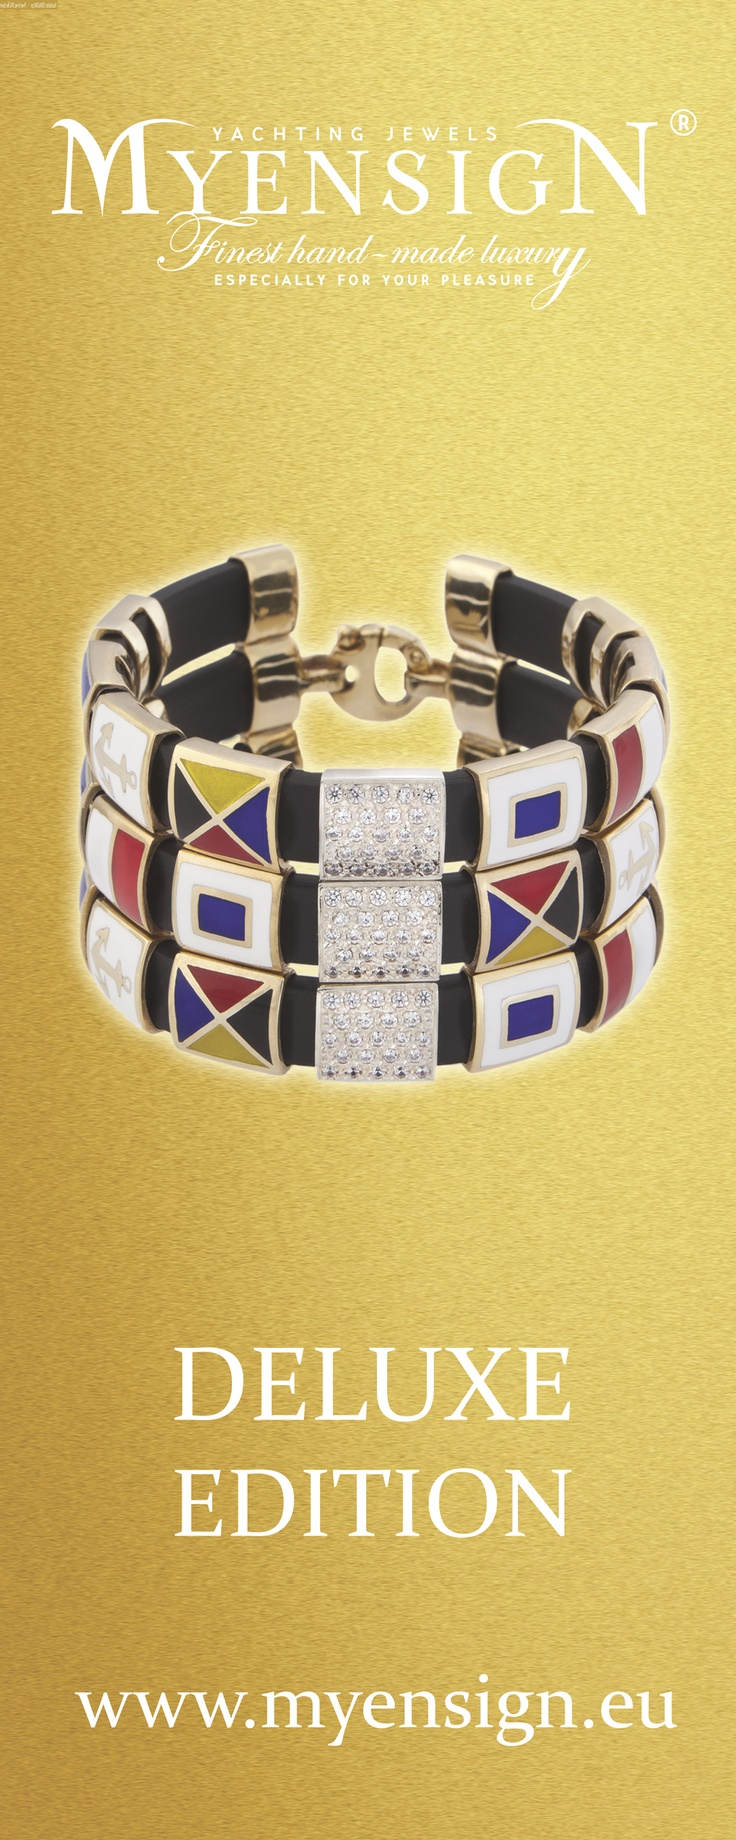 MyEnsign #Yachting #Jewels  Yellow# Gold Collection